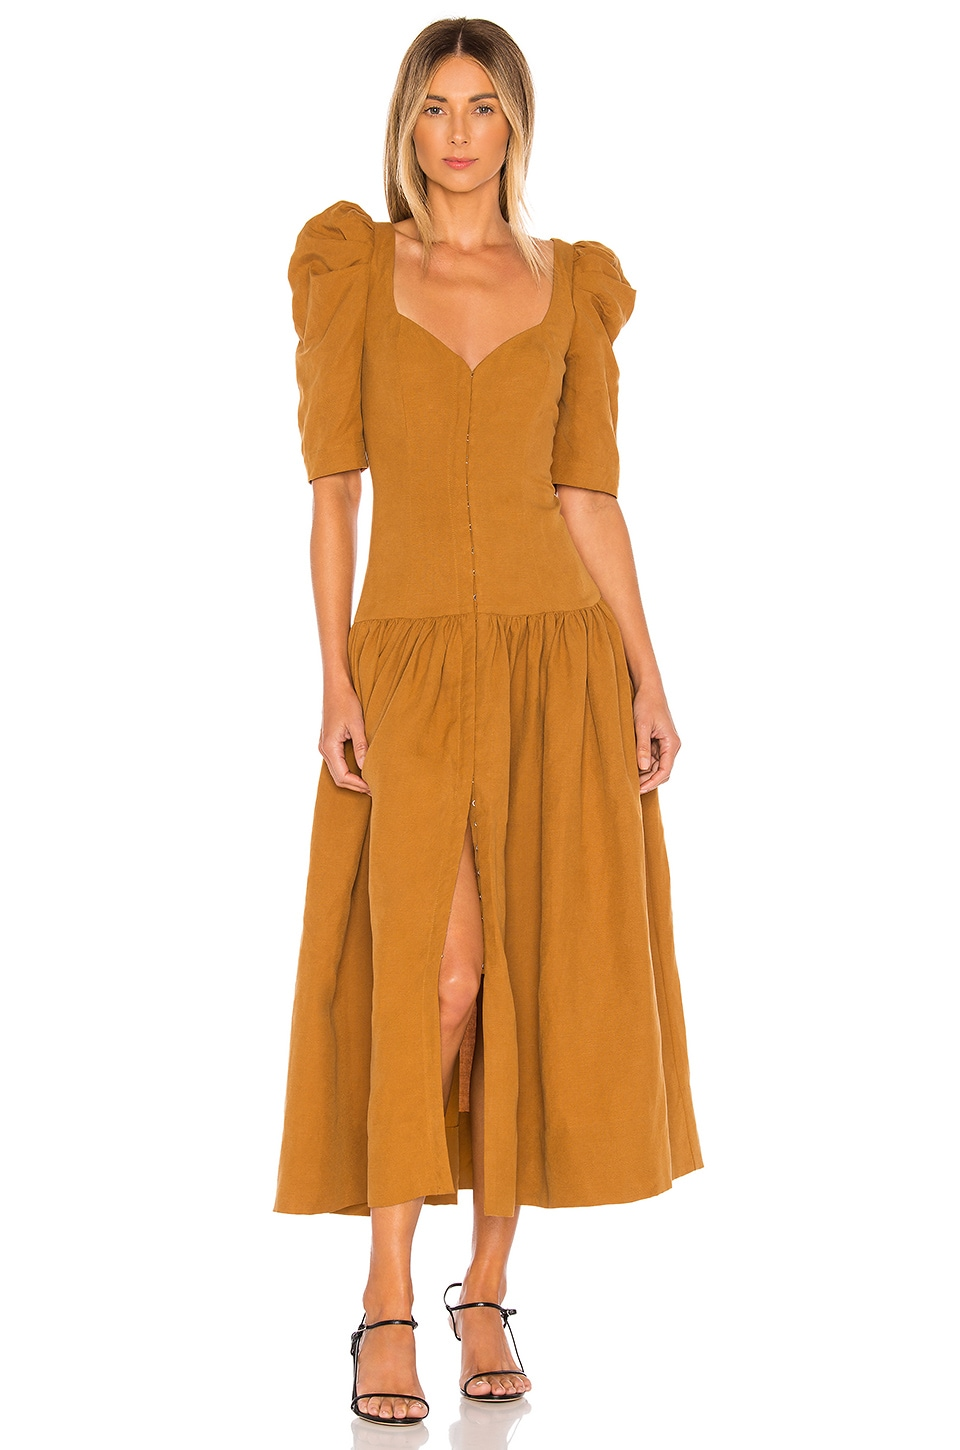 Mara Hoffman Phaedra Dress in Khaki